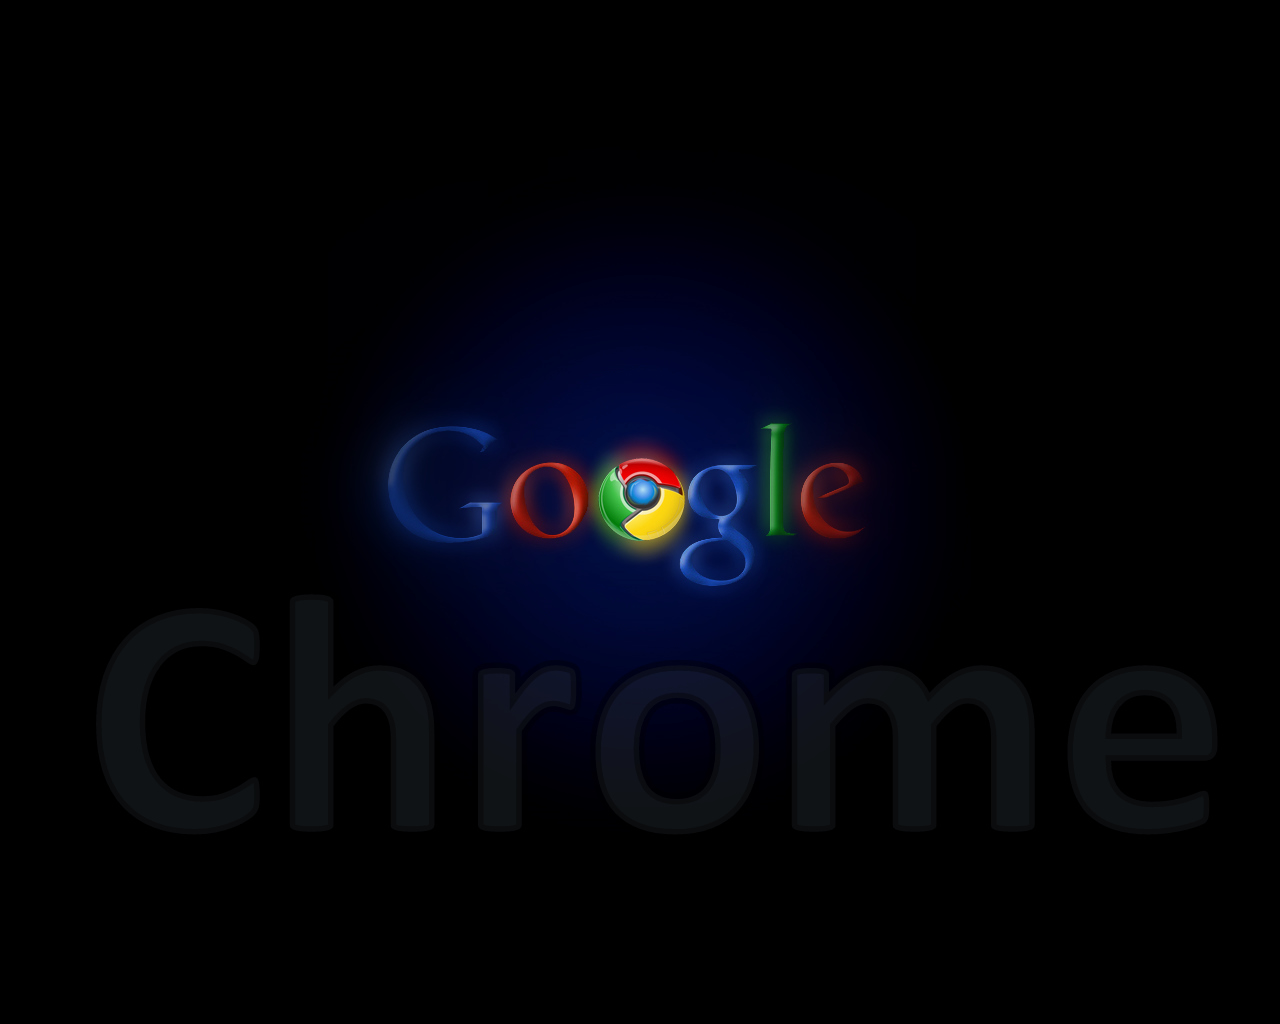 49 Google Chrome Wallpaper Themes On Wallpapersafari